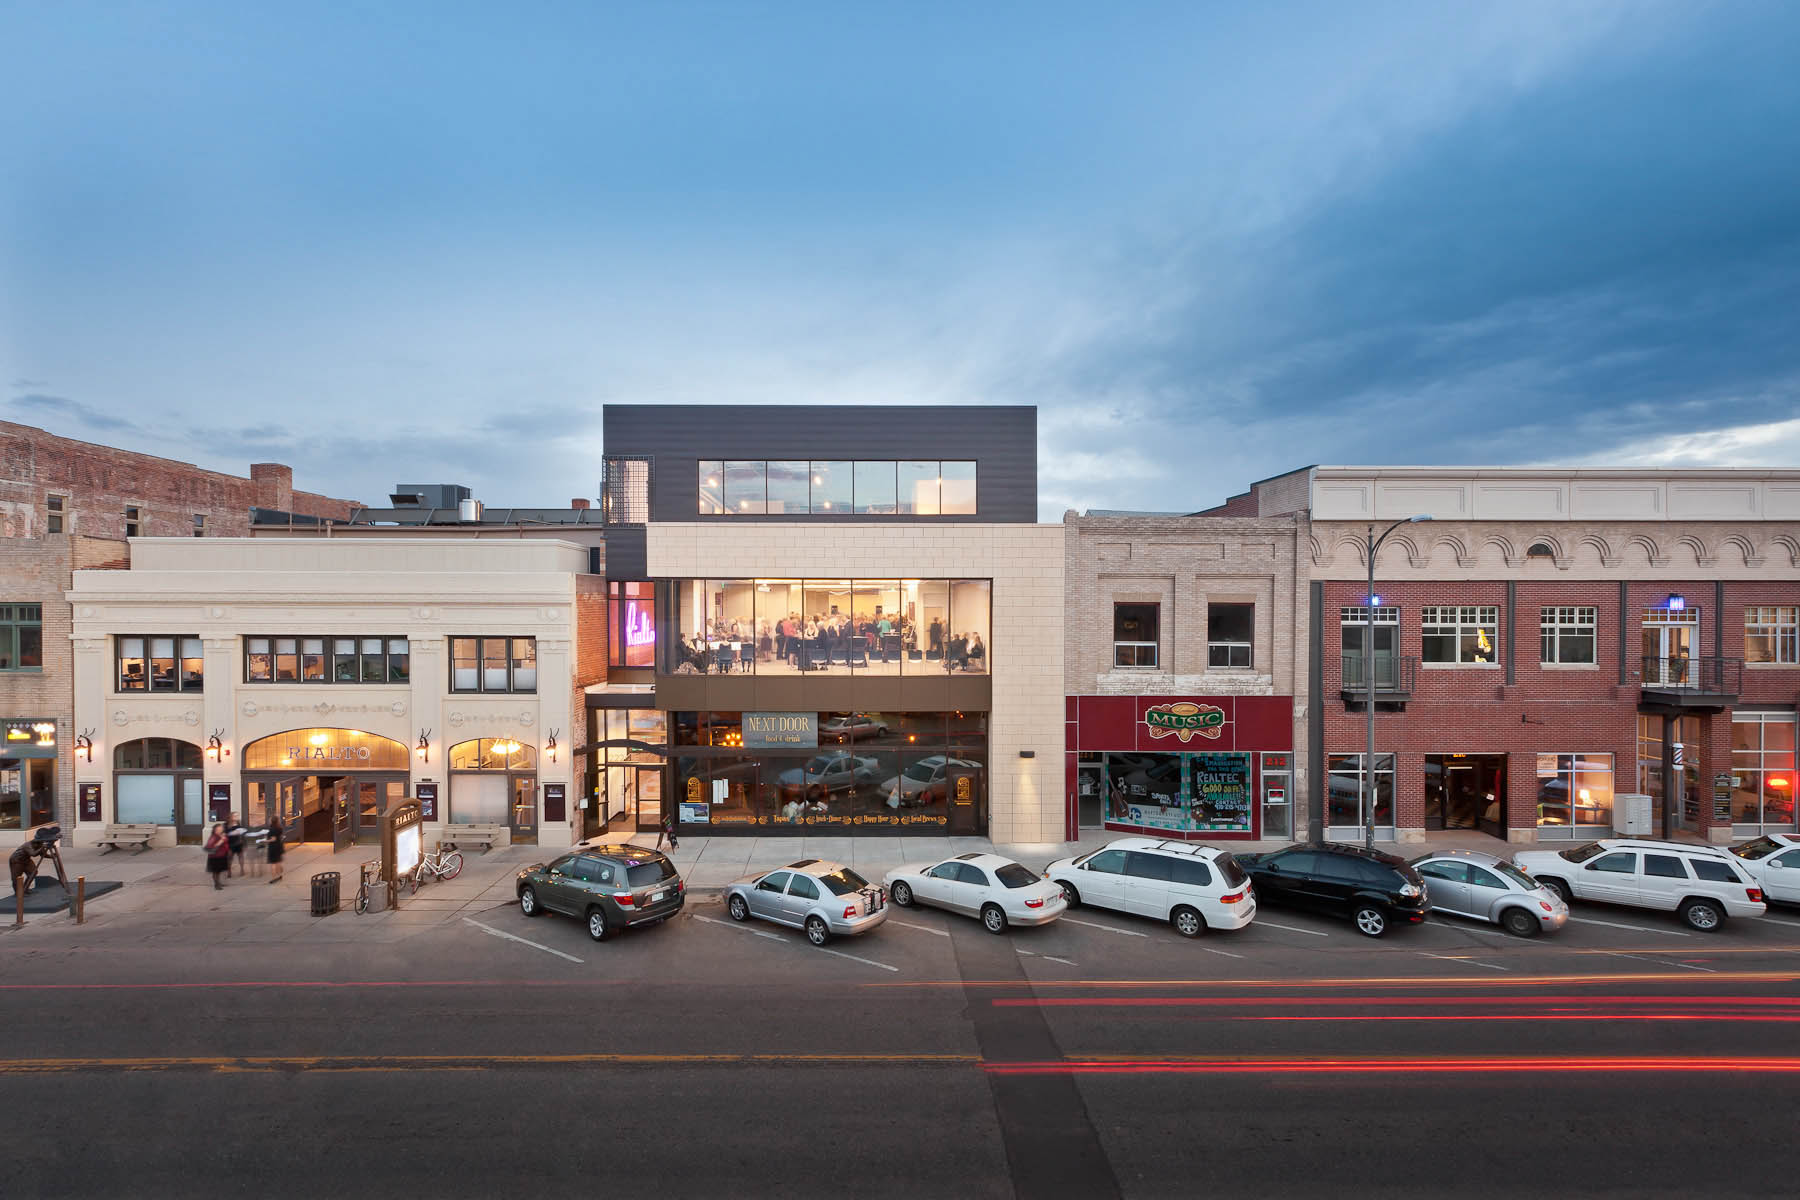 RB+B Architects' Rialto Theater renovation seen integrated with existing downtown Loveland, CO